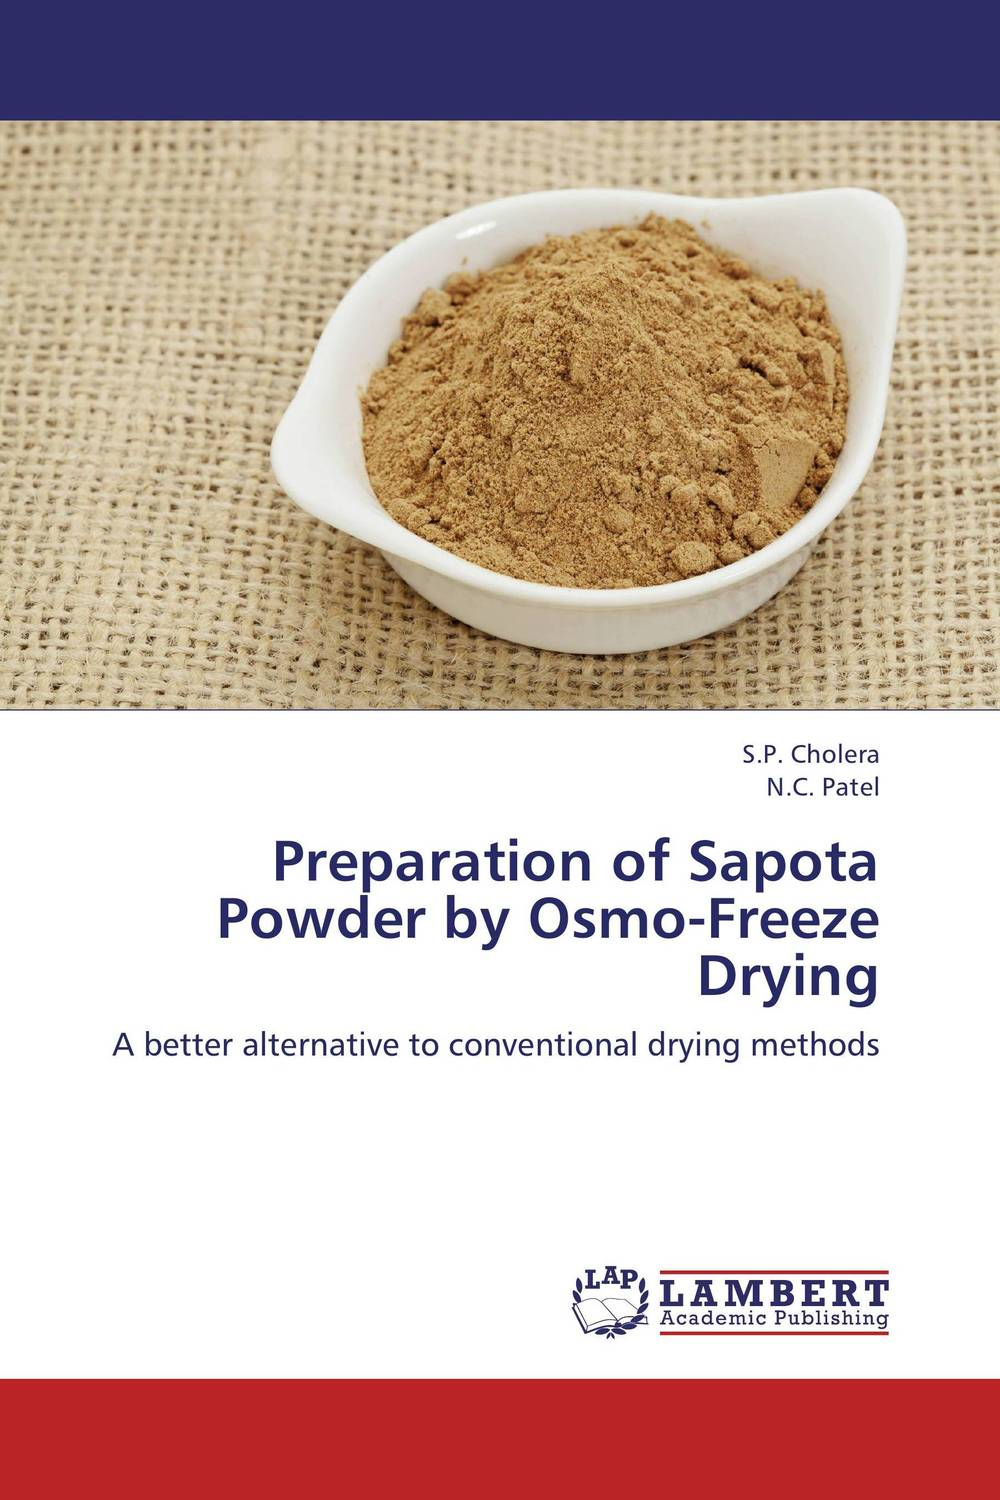 Preparation of Sapota Powder by Osmo-Freeze Drying effect of drying methods on biochemical composition of black tea